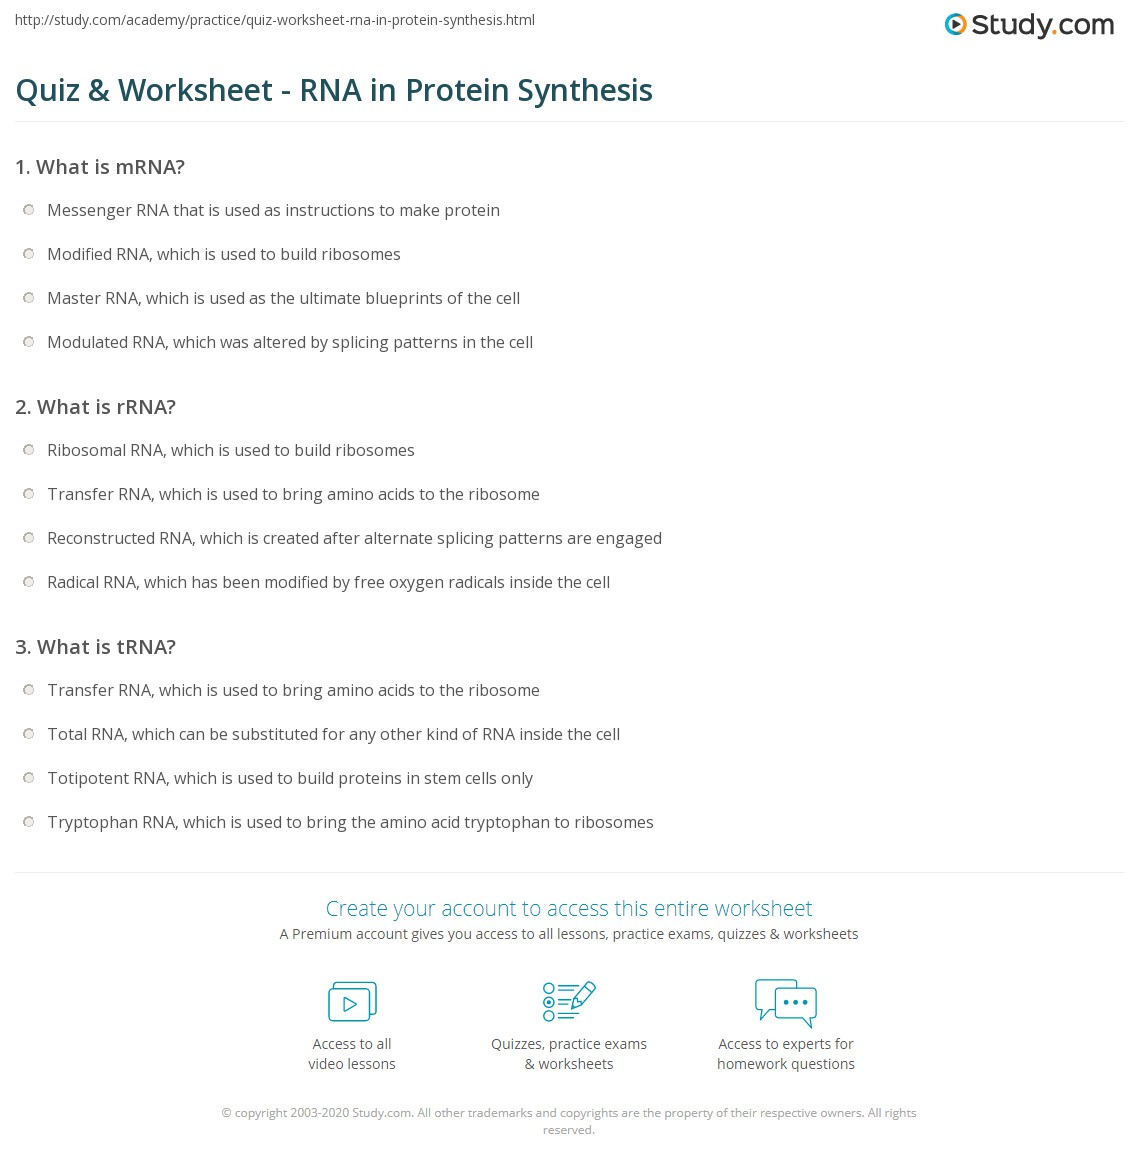 Quiz & Worksheet - RNA in Protein Synthesis | Study.com